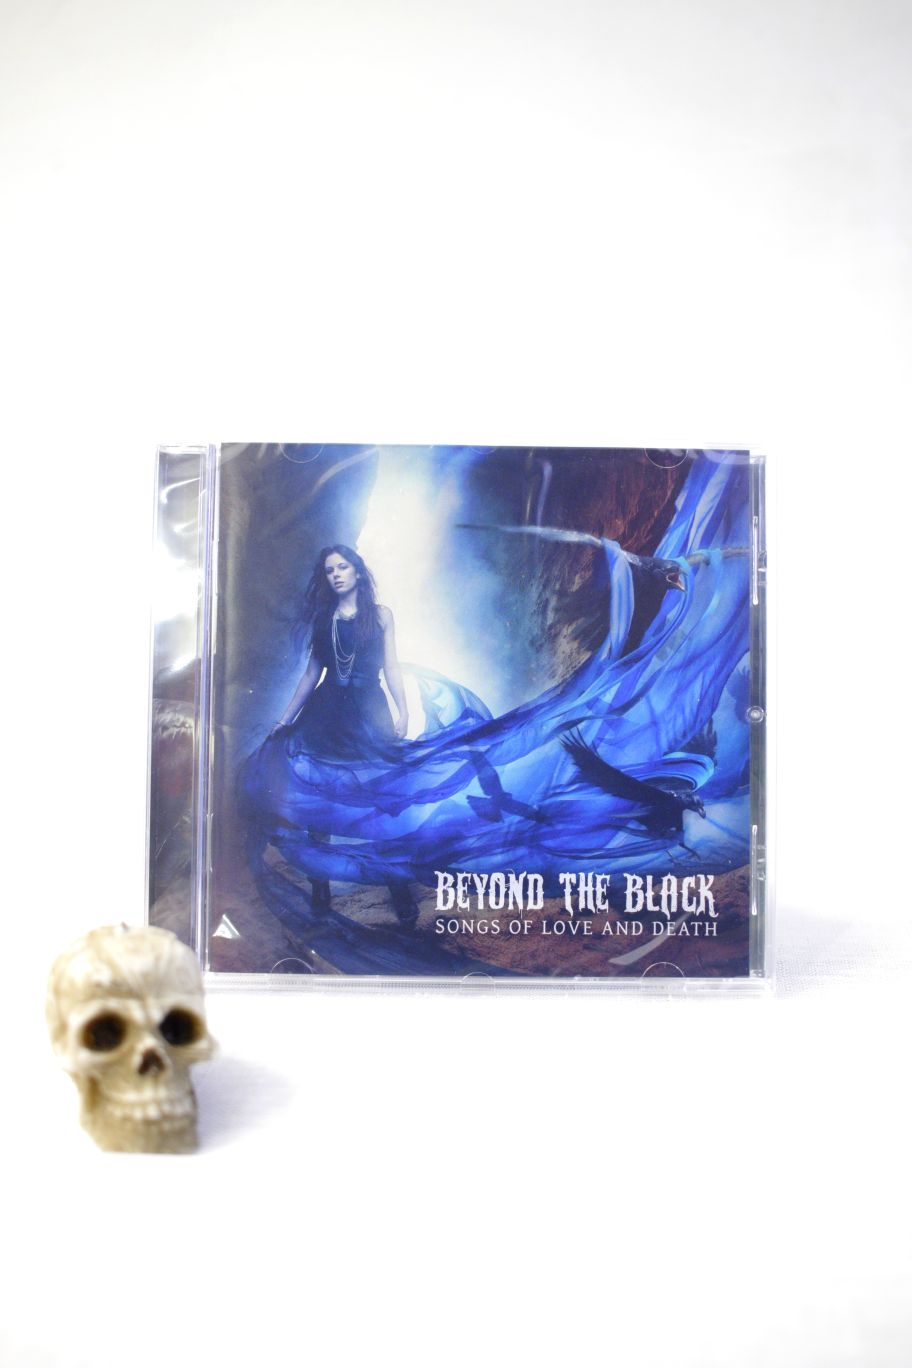 CD BEYOND THE BLACK SONGS OF LOVE AND DEATH